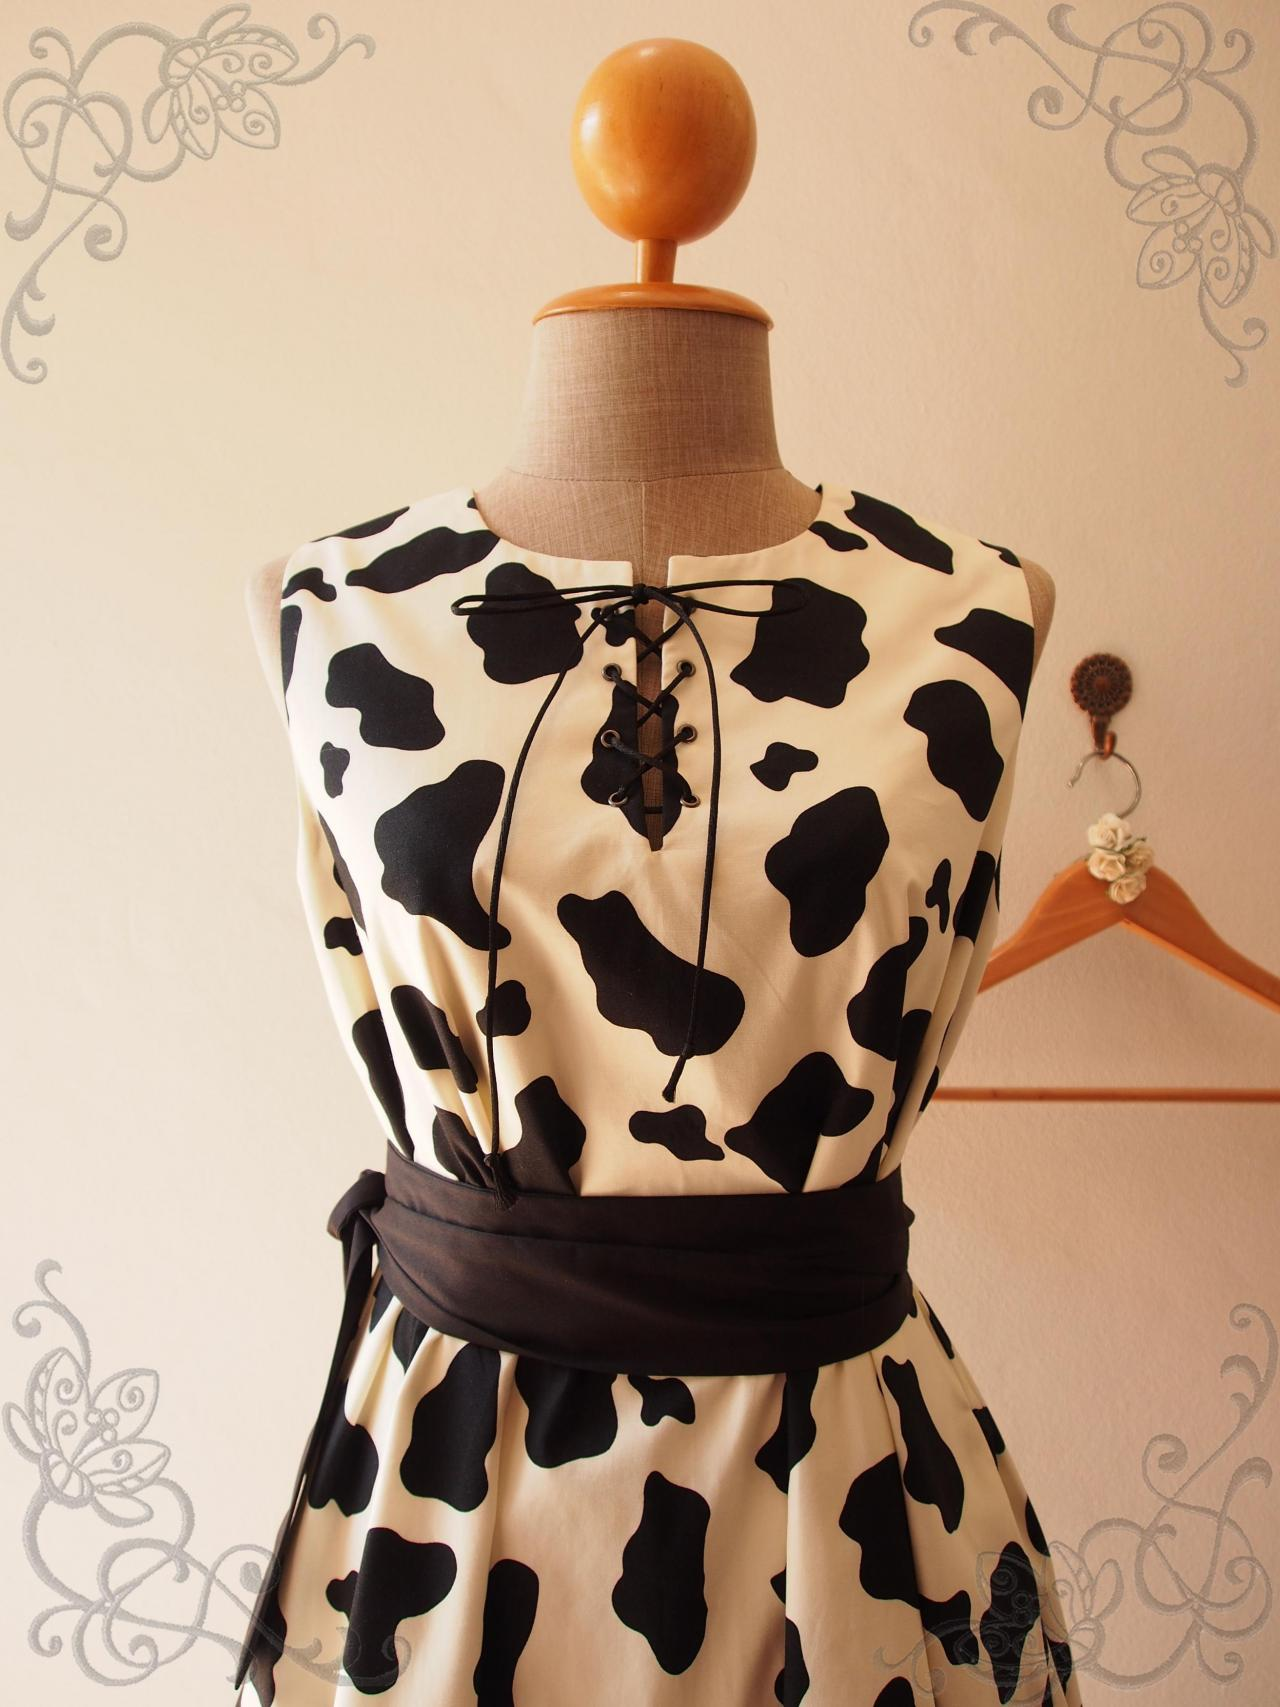 MOO Dress, Cow Print Dress, Summer Dress, Sundress, Pocket Dress, Vintage Style Dress, Maternity Dress, Sash Dress, Country Western Look, Tent Shape Dress, Tea Party Dress,Tie Sash - ONE FINE DAY - XS-XL